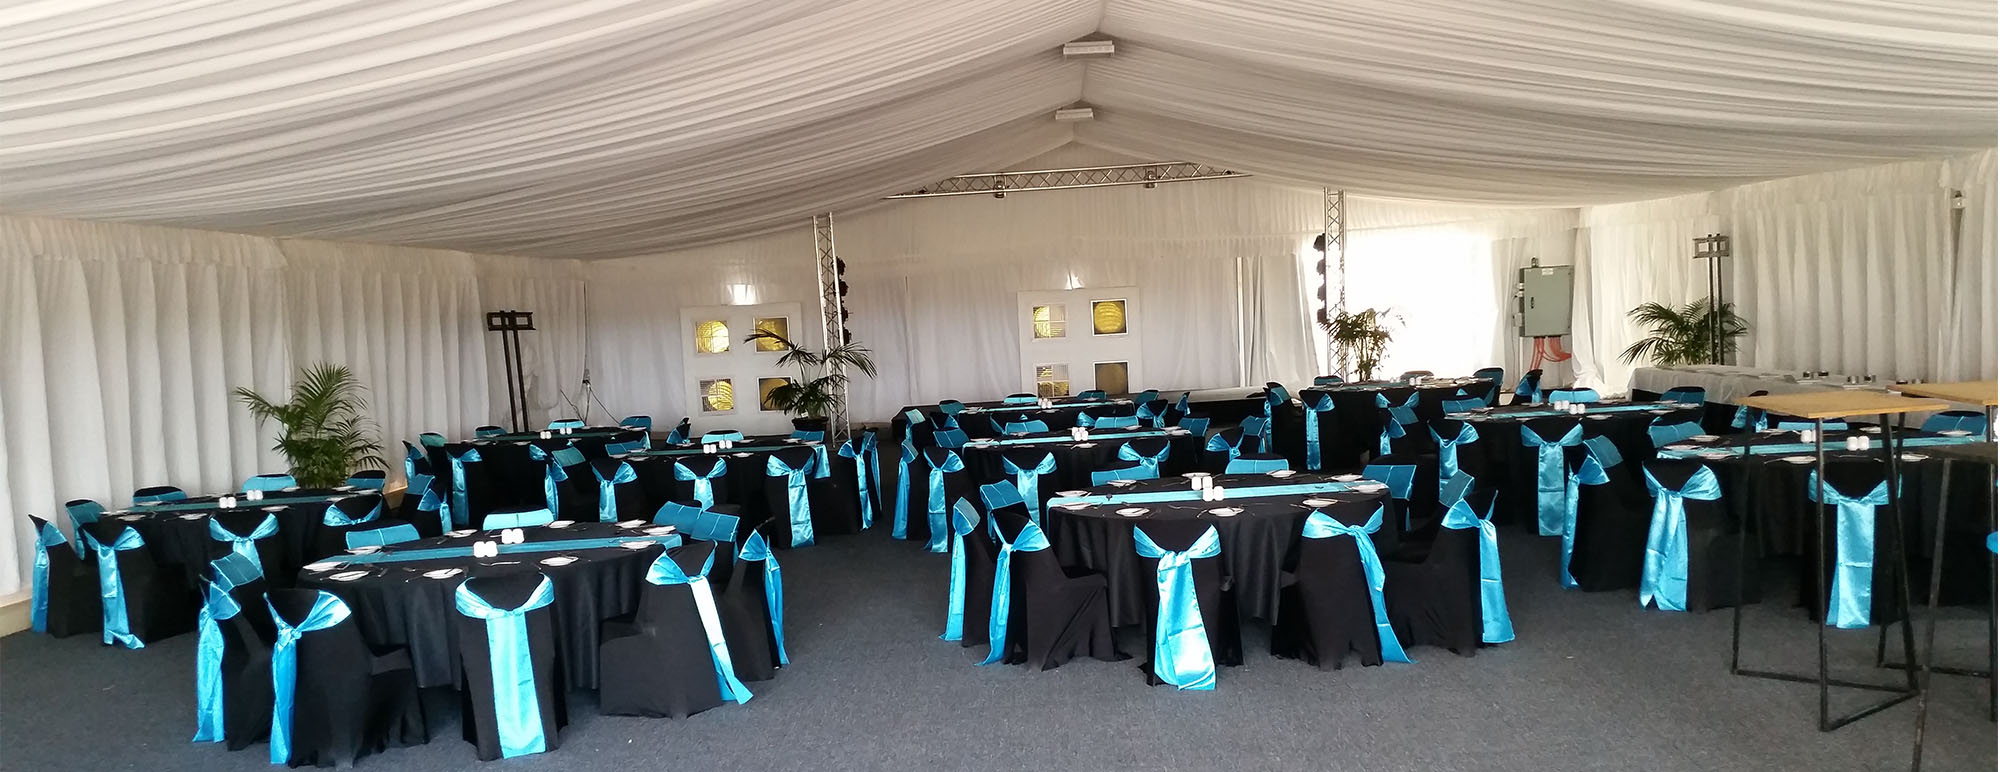 Party Planners Perth Widdeson S Hire Services Event Hire For Perth Rural Areas